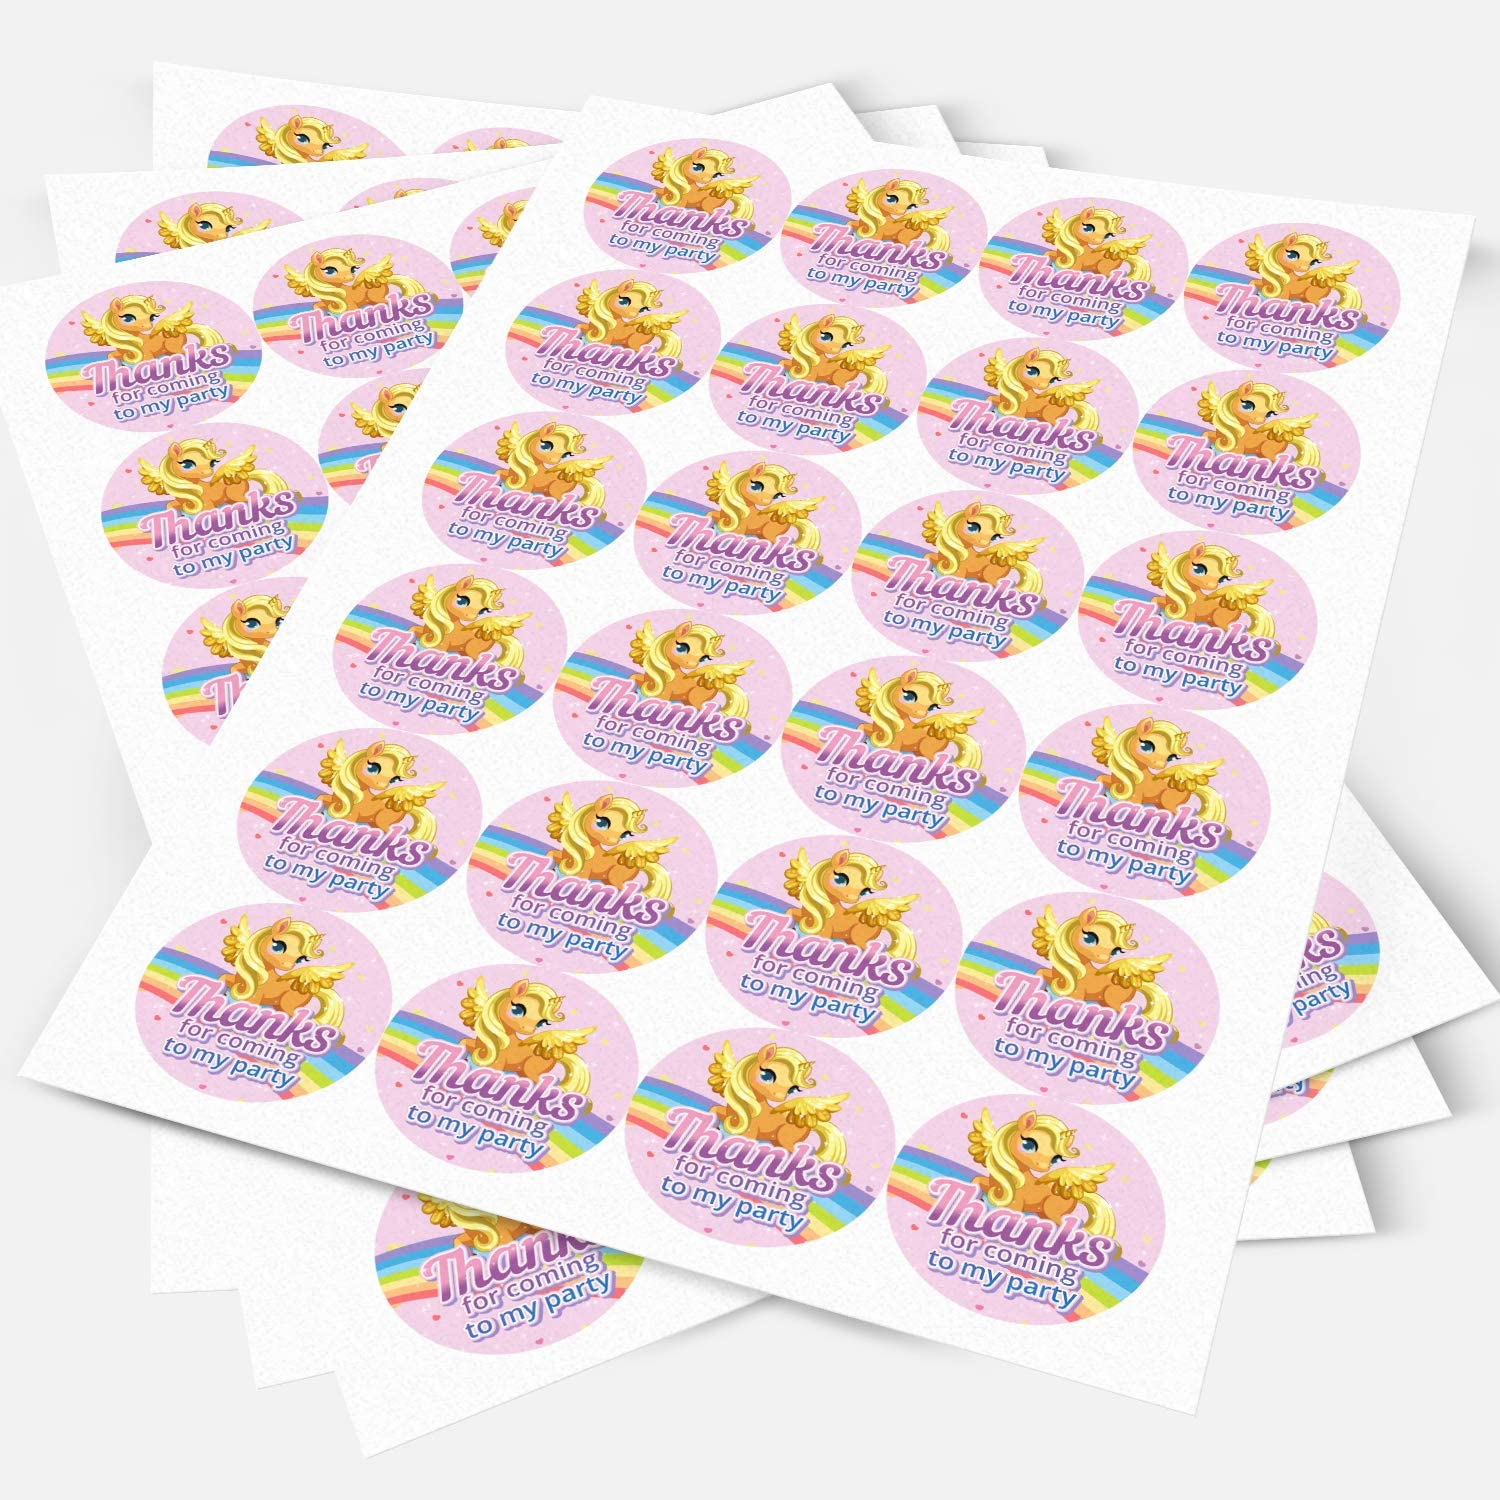 NON-PERSONALISED Pony Party Unicorn Sticker Labels Sweet Cones Party Bags Gift Boxes Favors Thank You 3.5 CM x 35 // 1, A4 Sheet